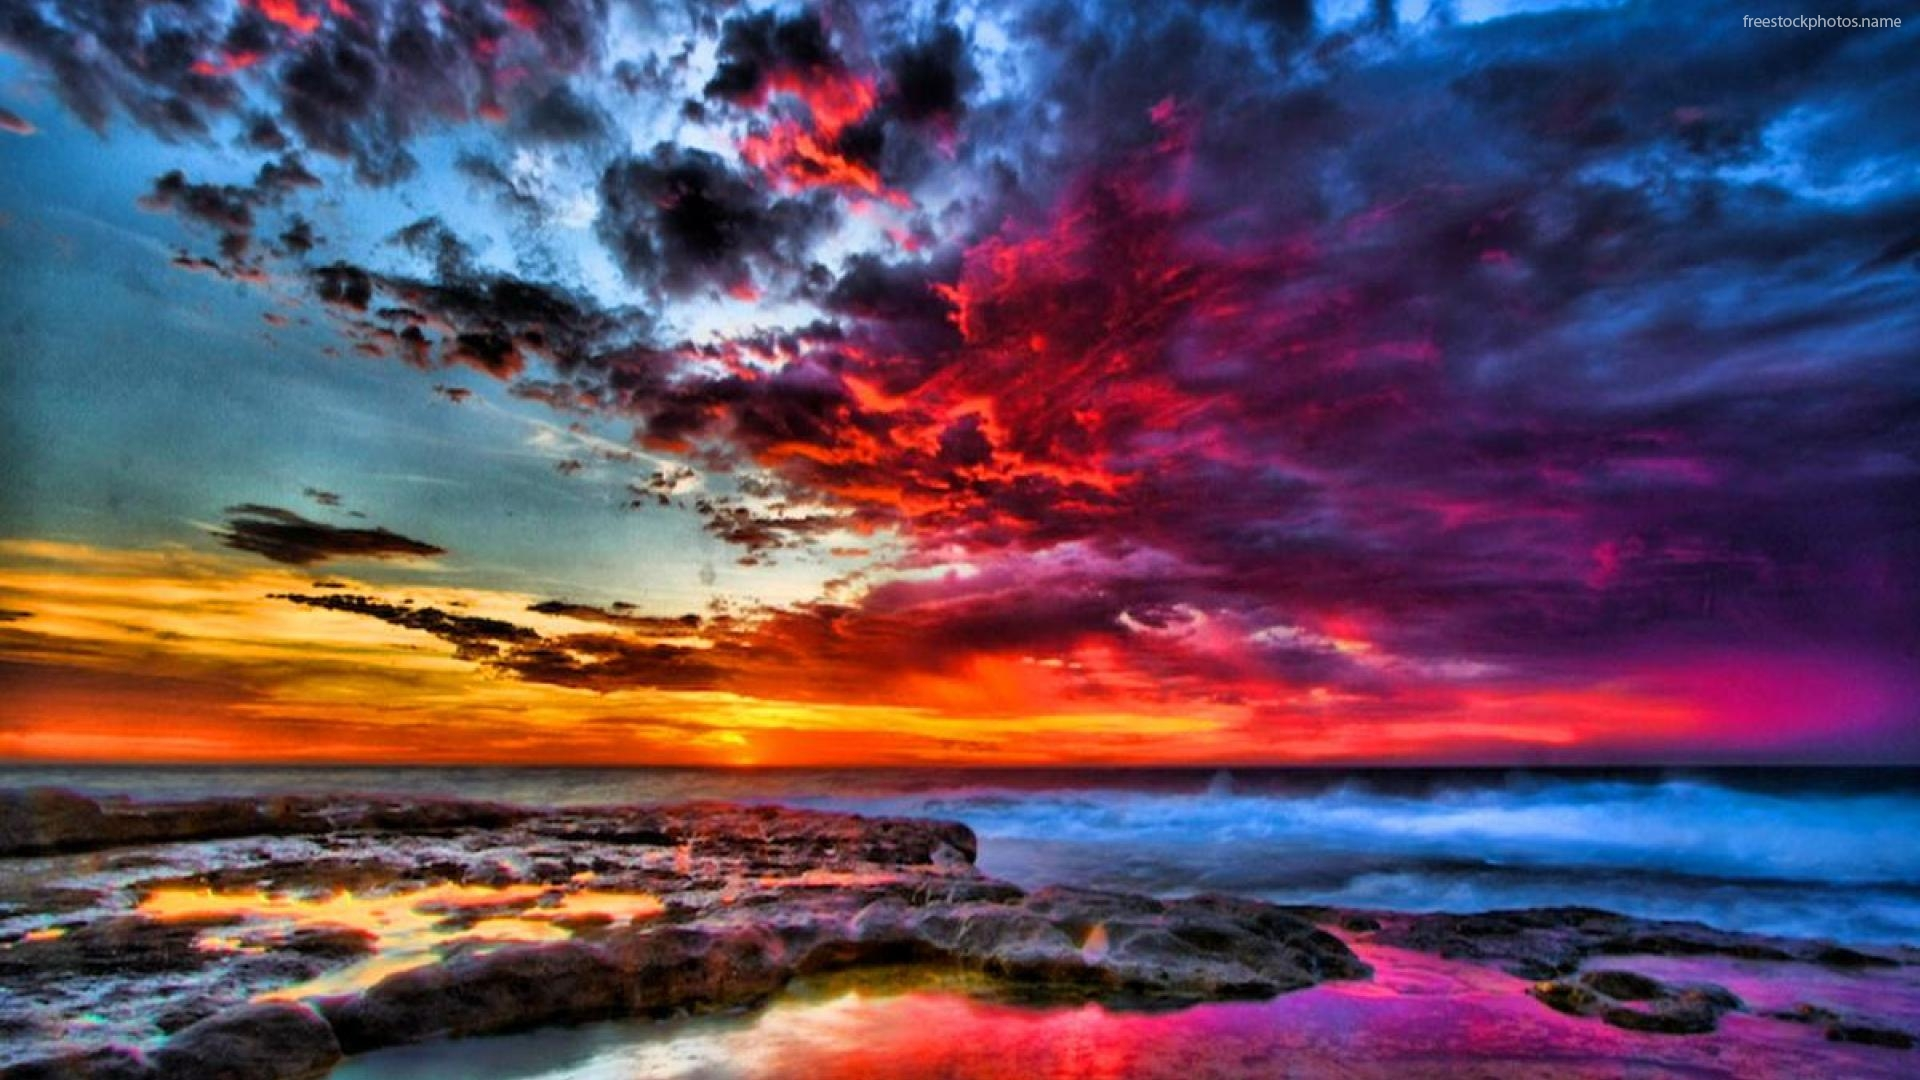 Hd Nature Phone Wallpapers Download Colorful Sunset Wallpaper Gallery